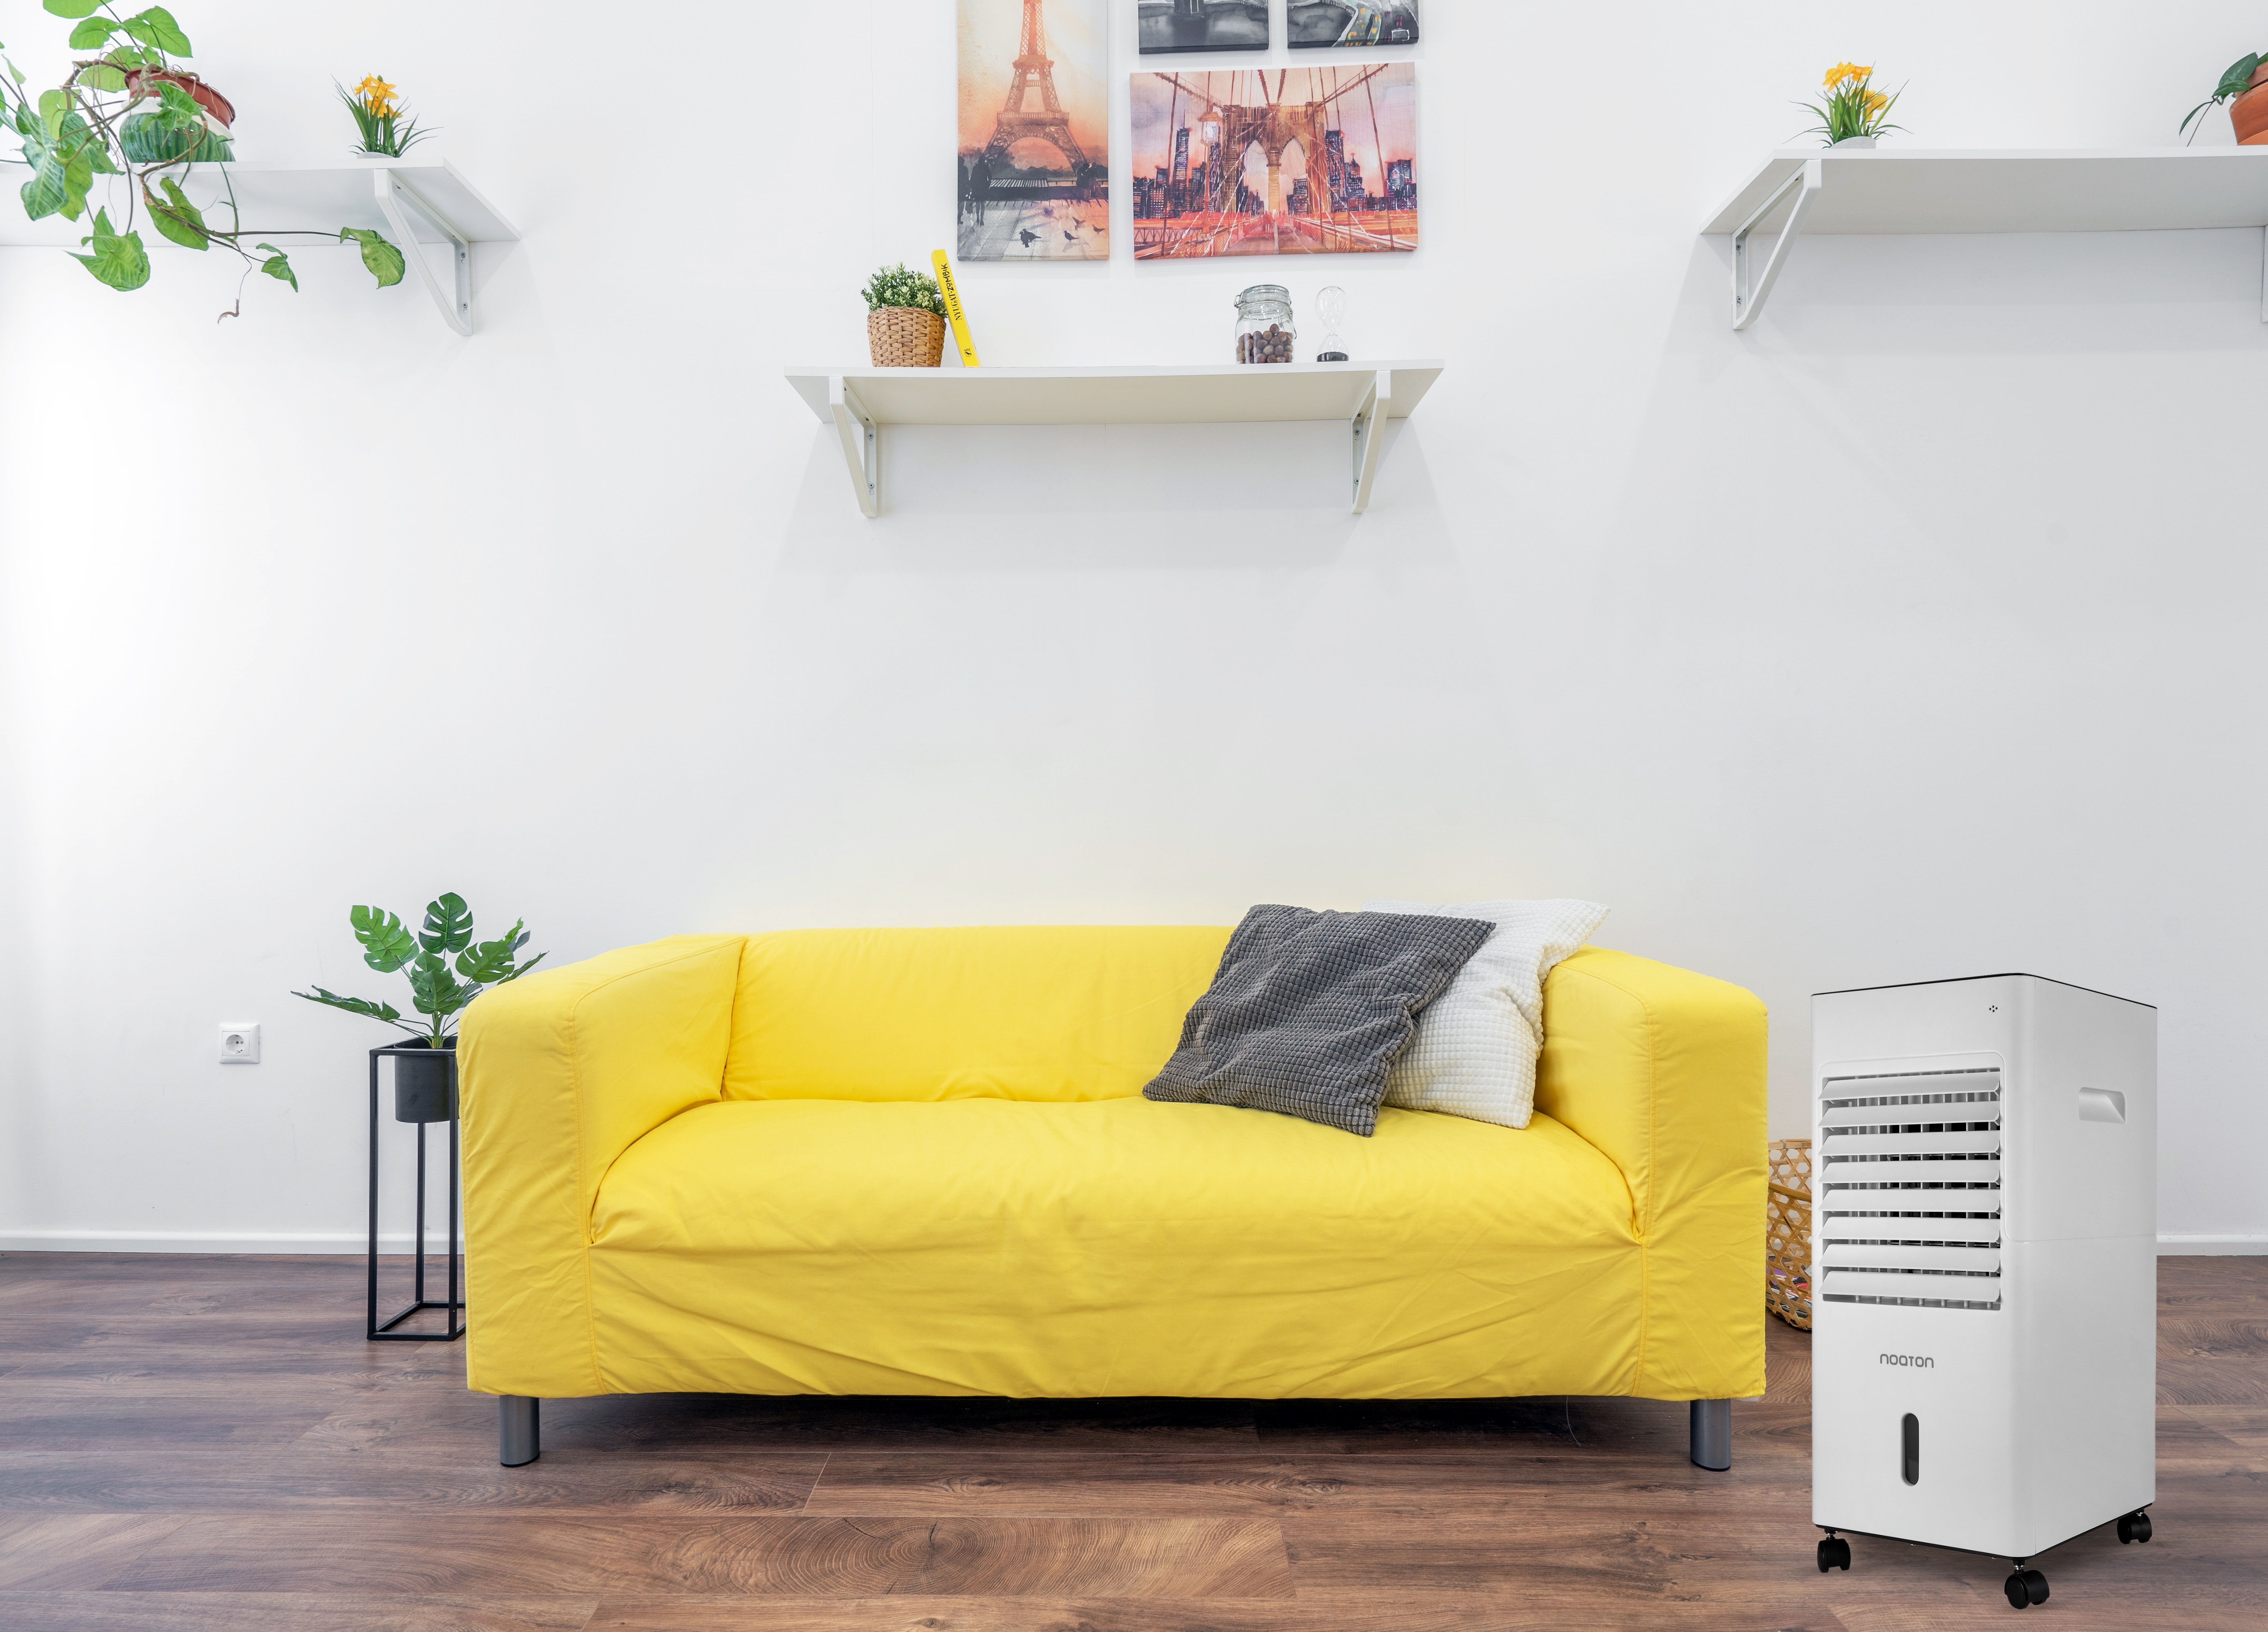 6160-yellow-couch